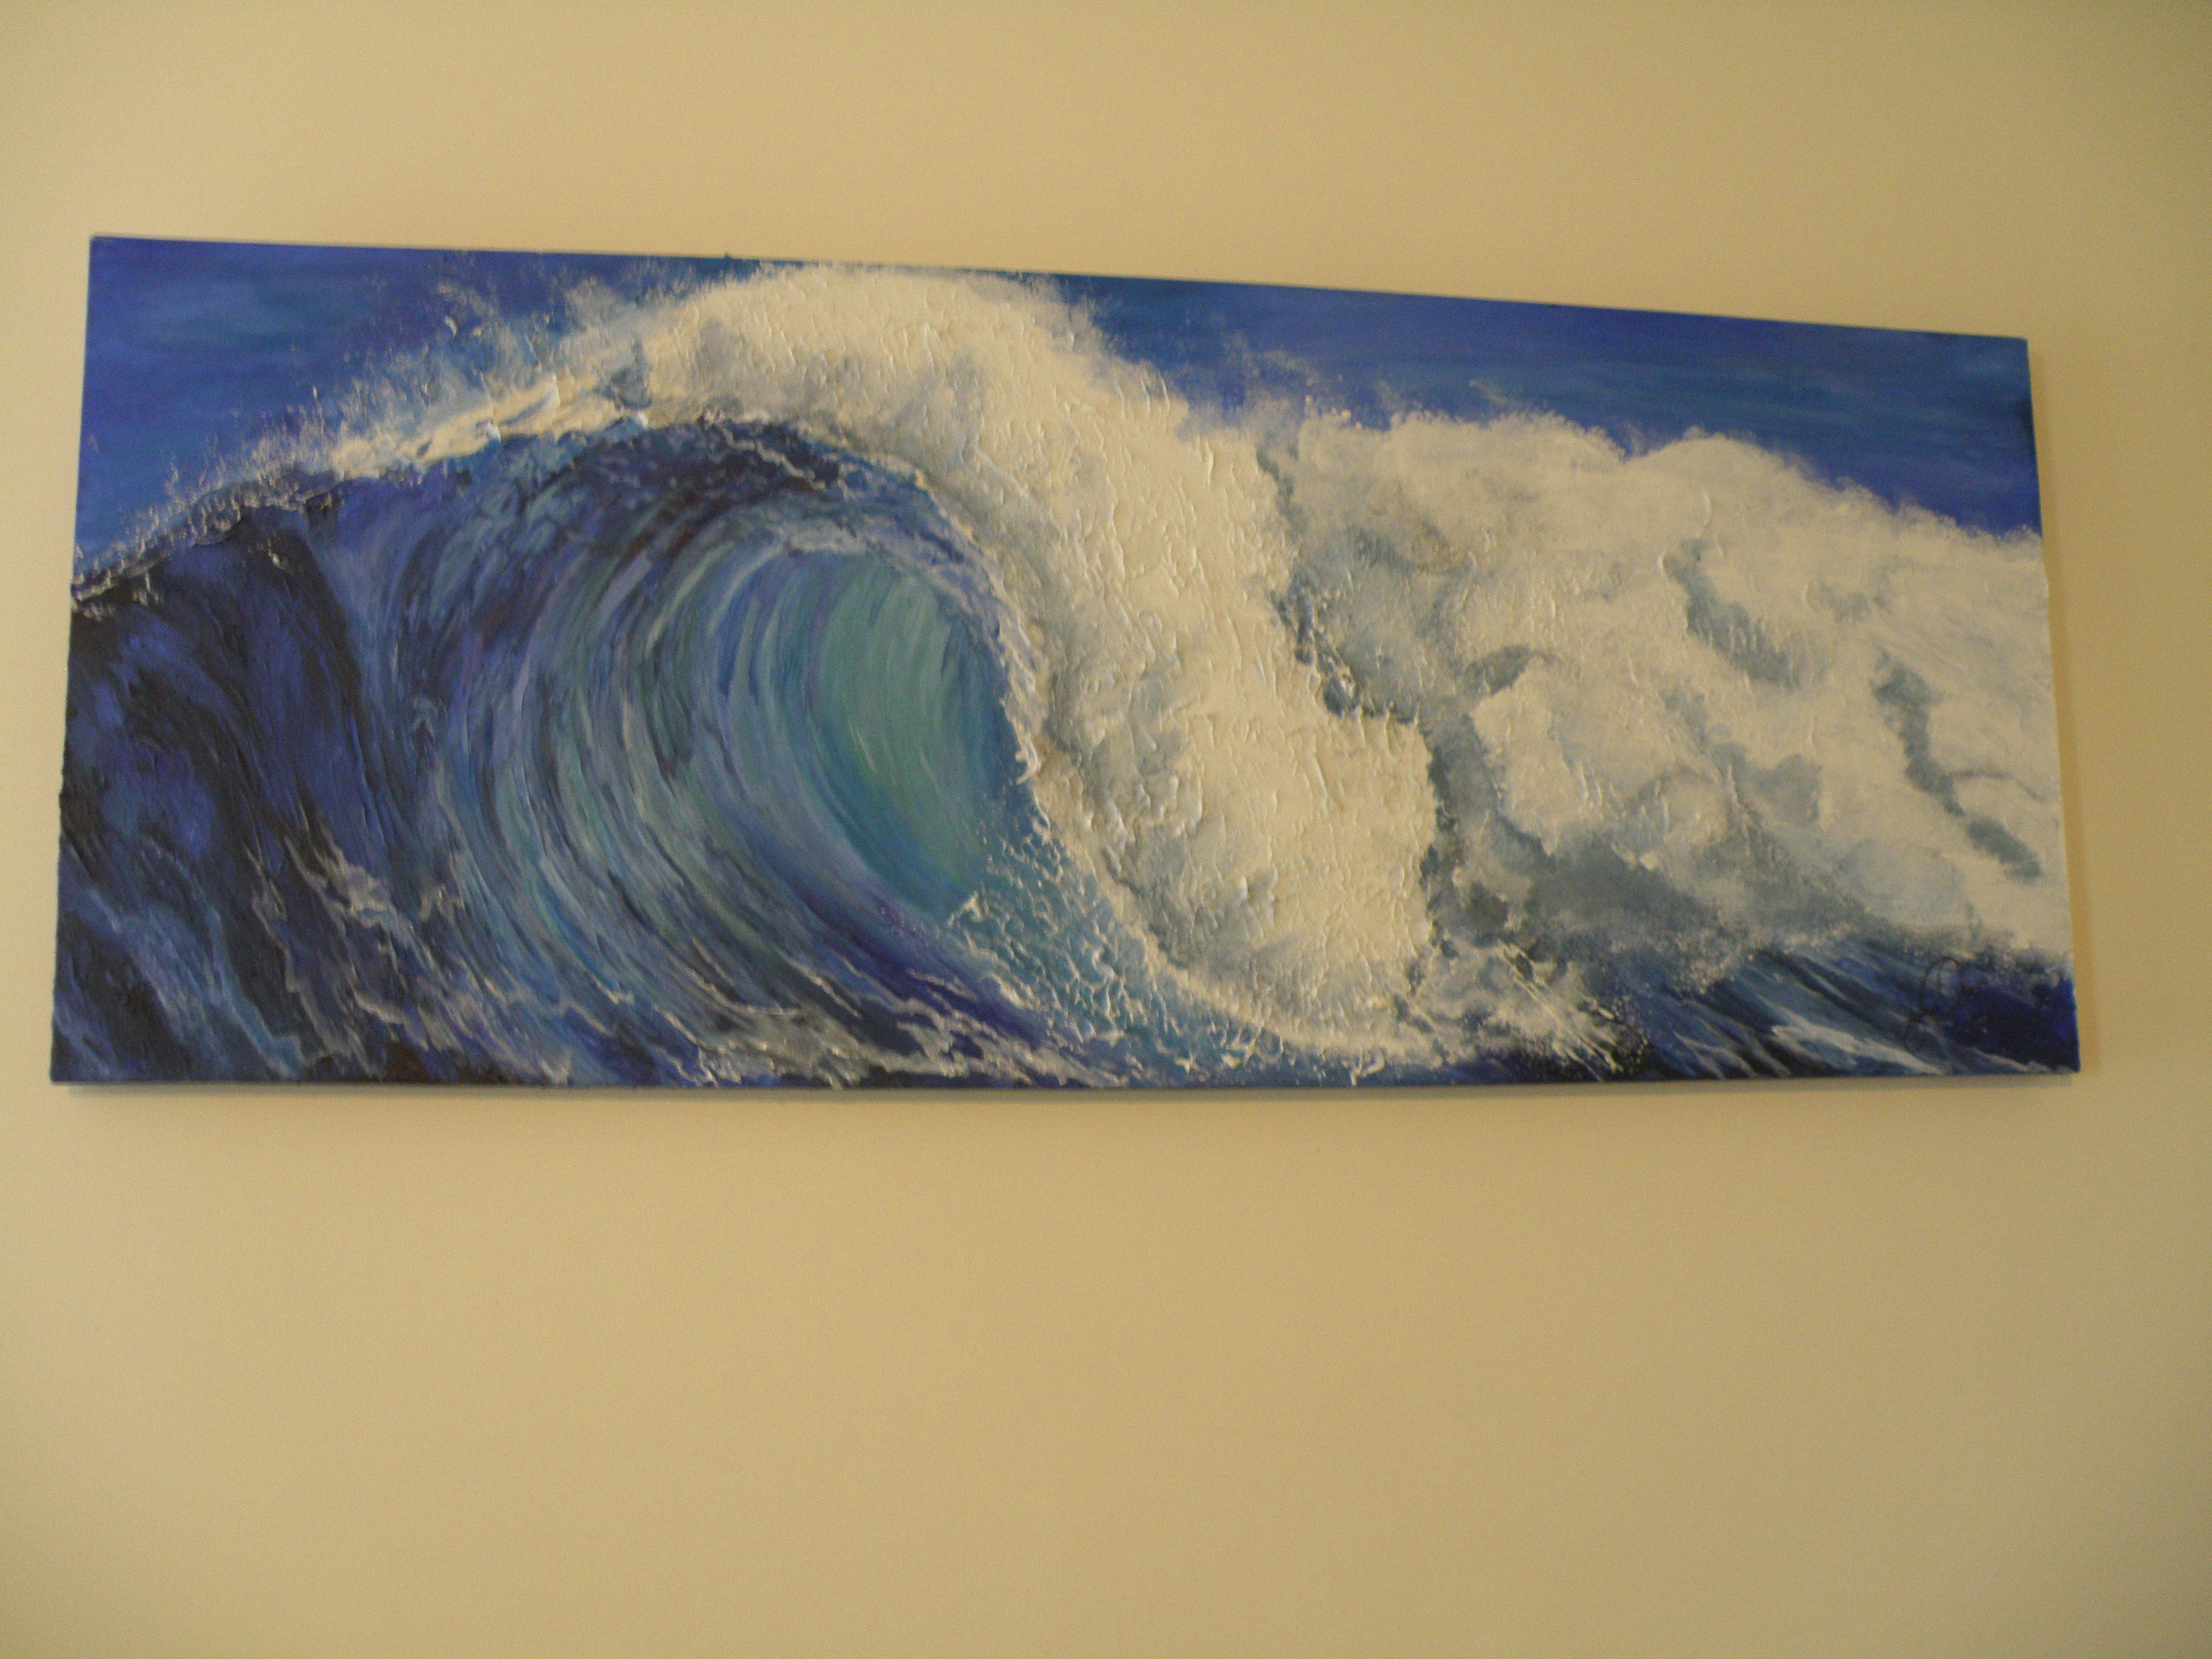 Wave - Acrylic and gesso on canvas | Canvas Art | Pinterest ...